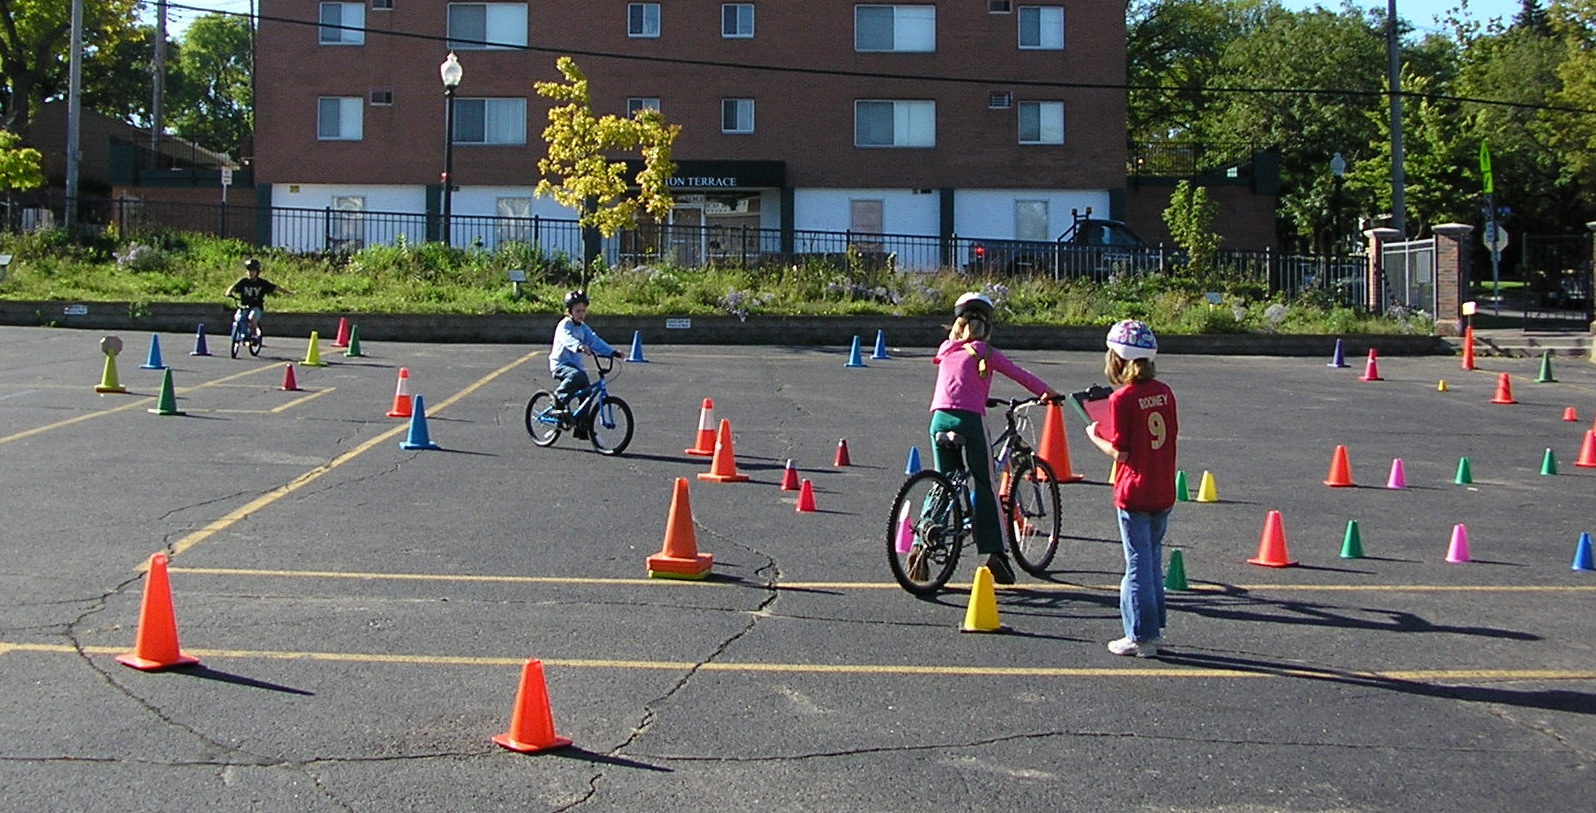 Children riding bicycles through a course of traffic cones